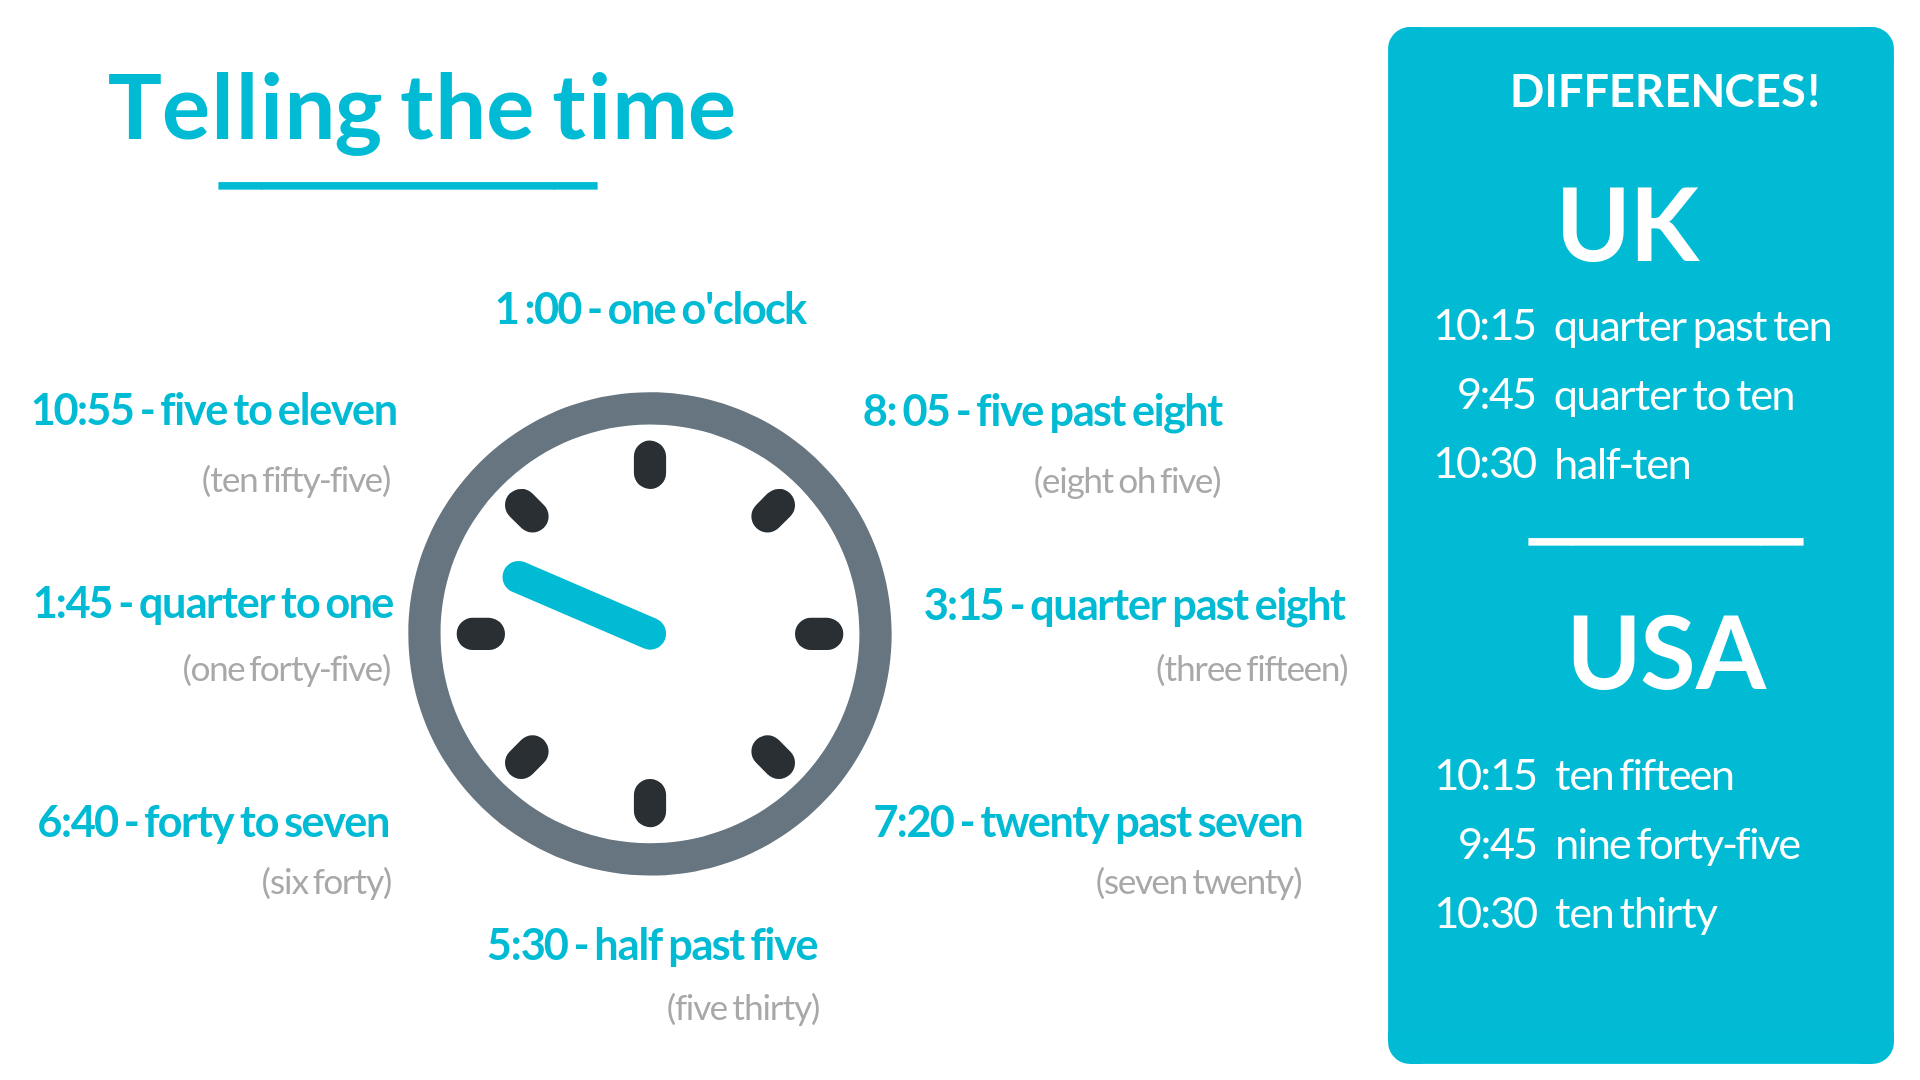 How to tell the time - UK and US